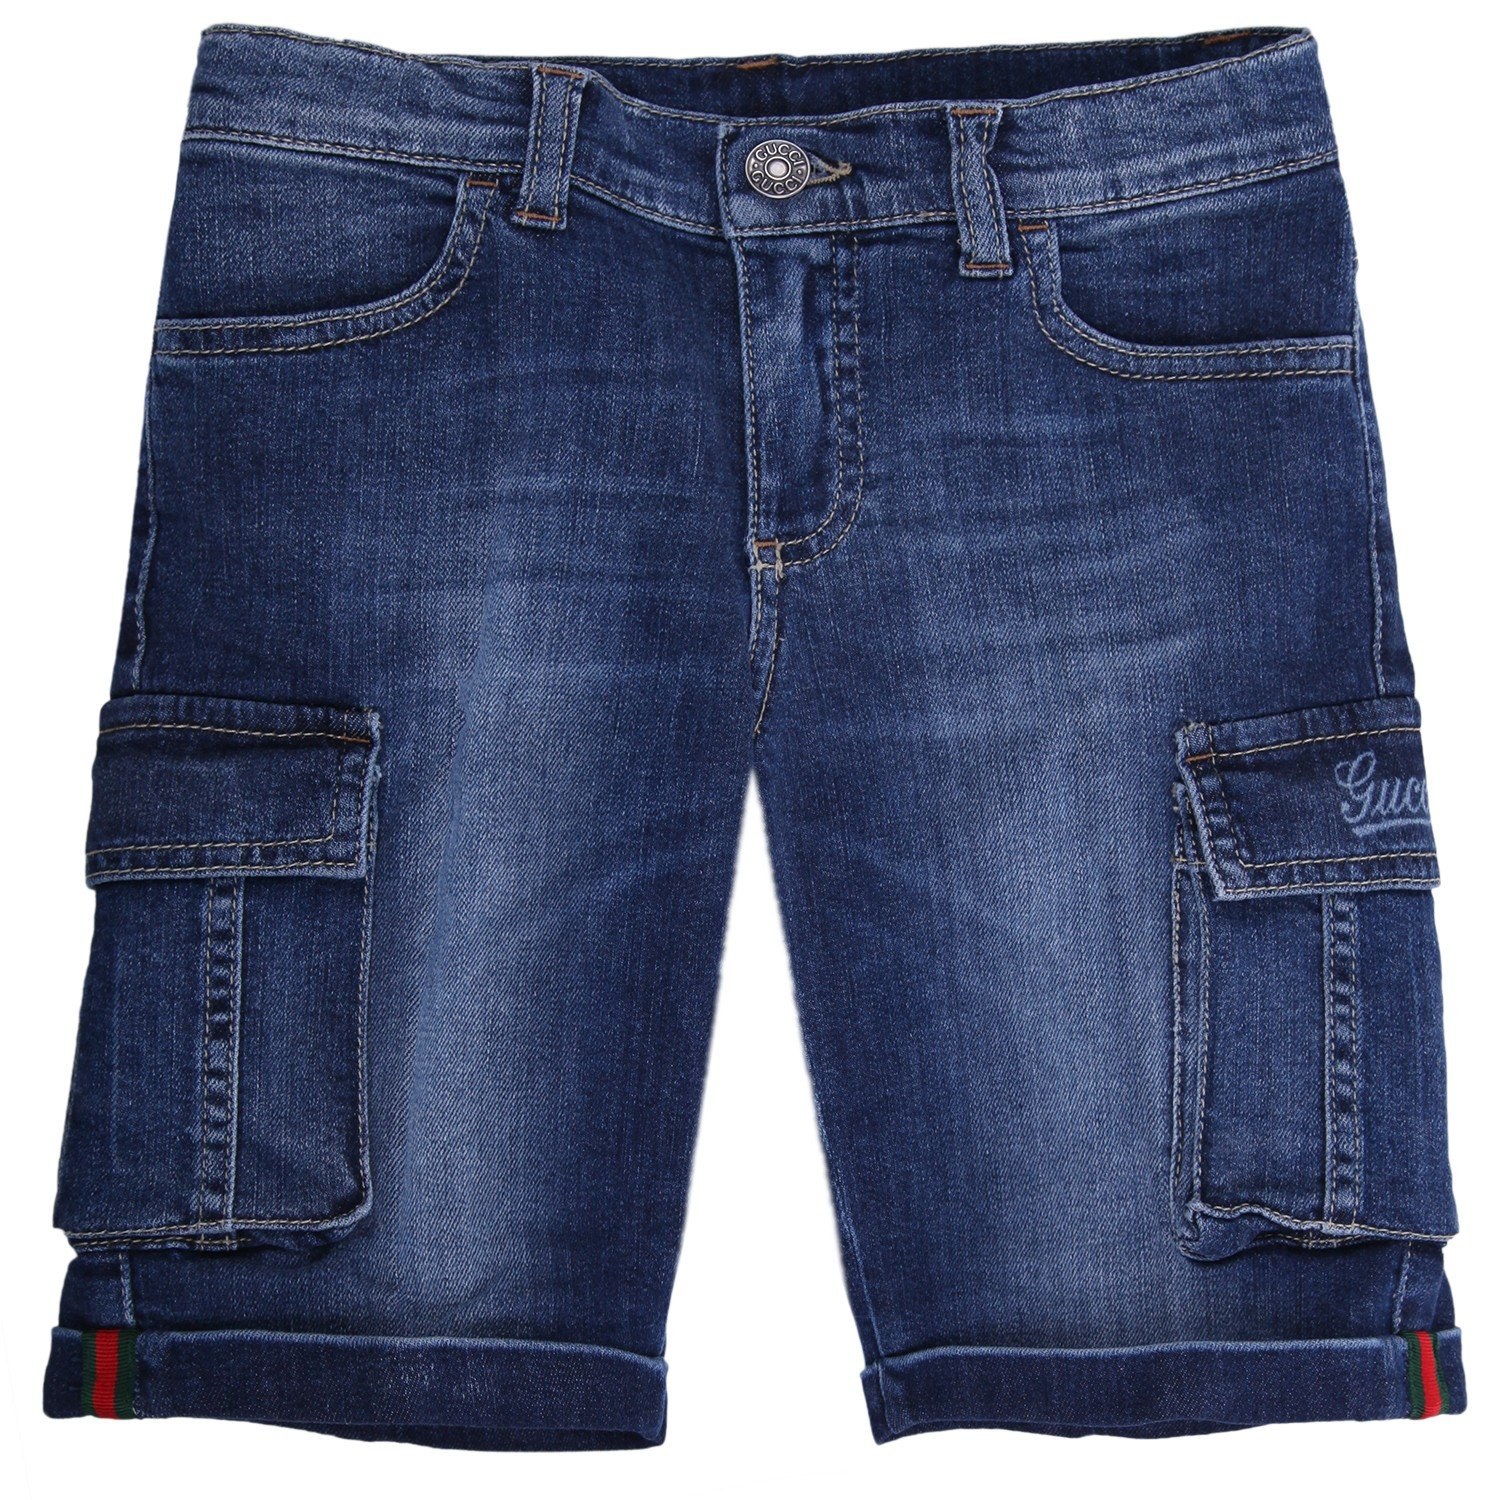 Gucci Boys Jeans Shorts Blue 311681-4046, Old Child Size:6 Years